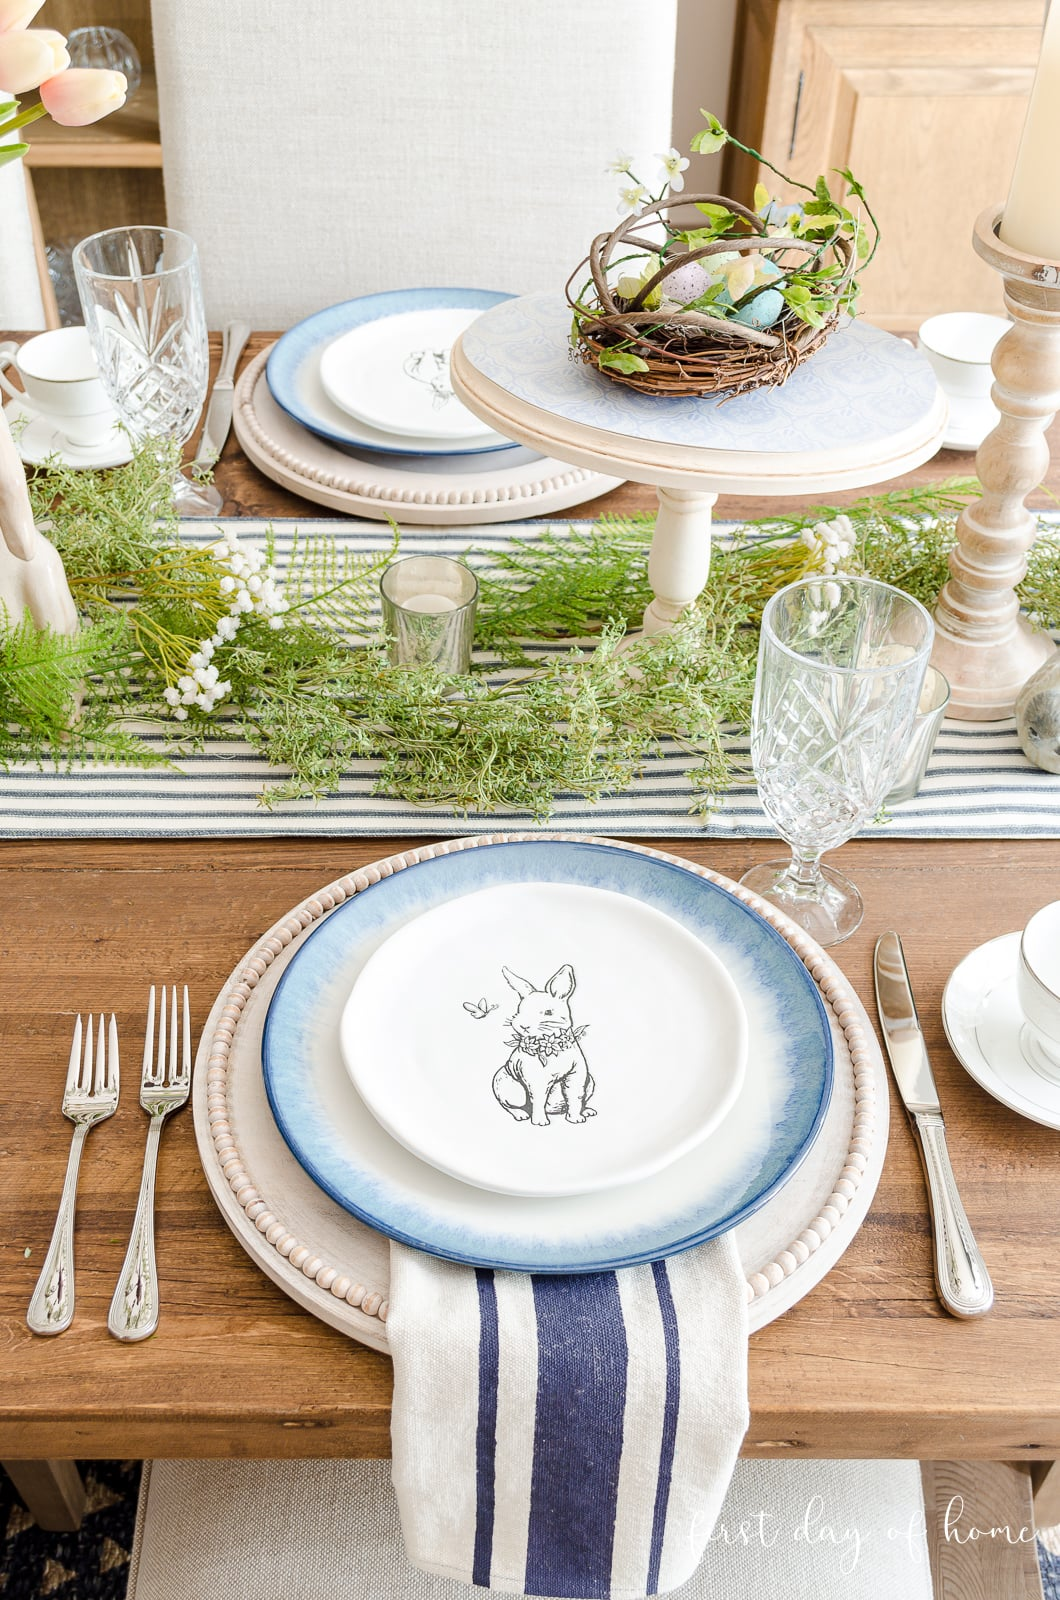 Spring place setting with bunny plate, blue dinner plate and whitewashed charger plate